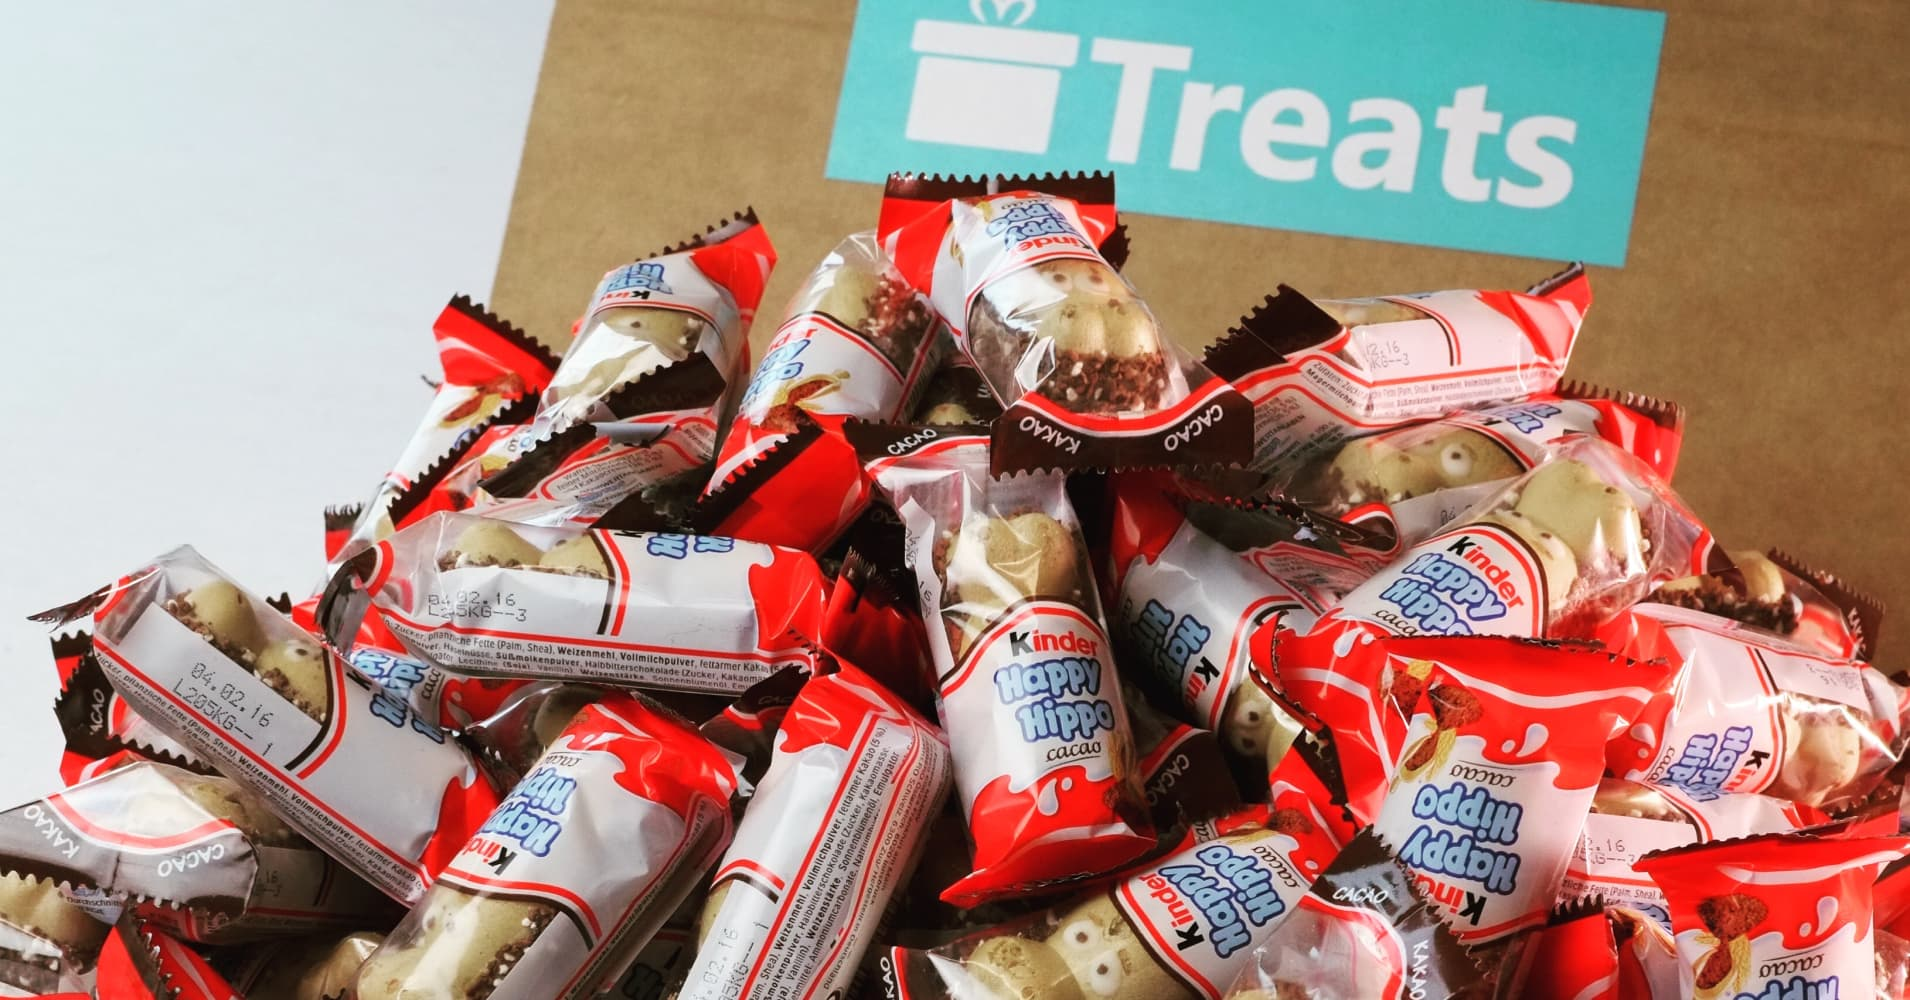 Treats is a subscription service for international snacks.